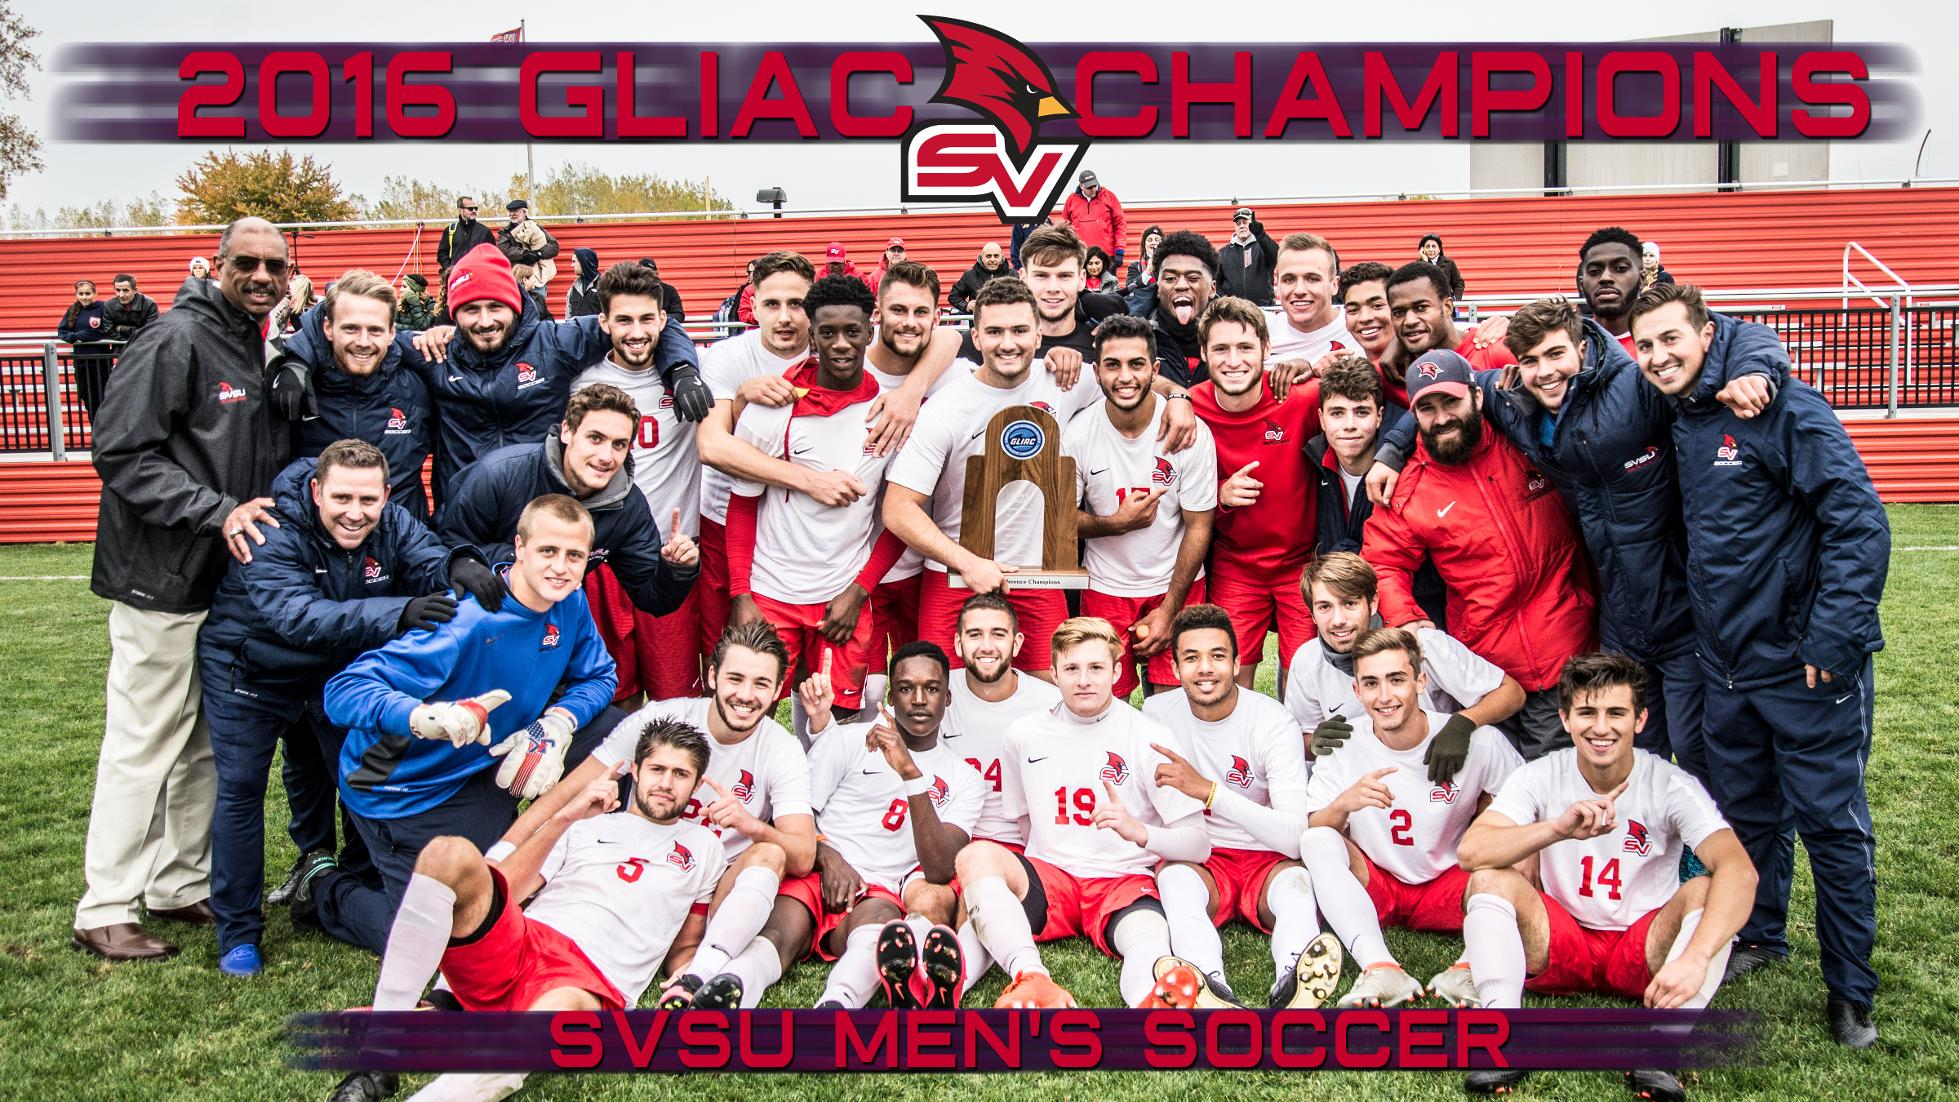 Cardinals Claim GLIAC Championship With 3-1 Victory Over Wildcats